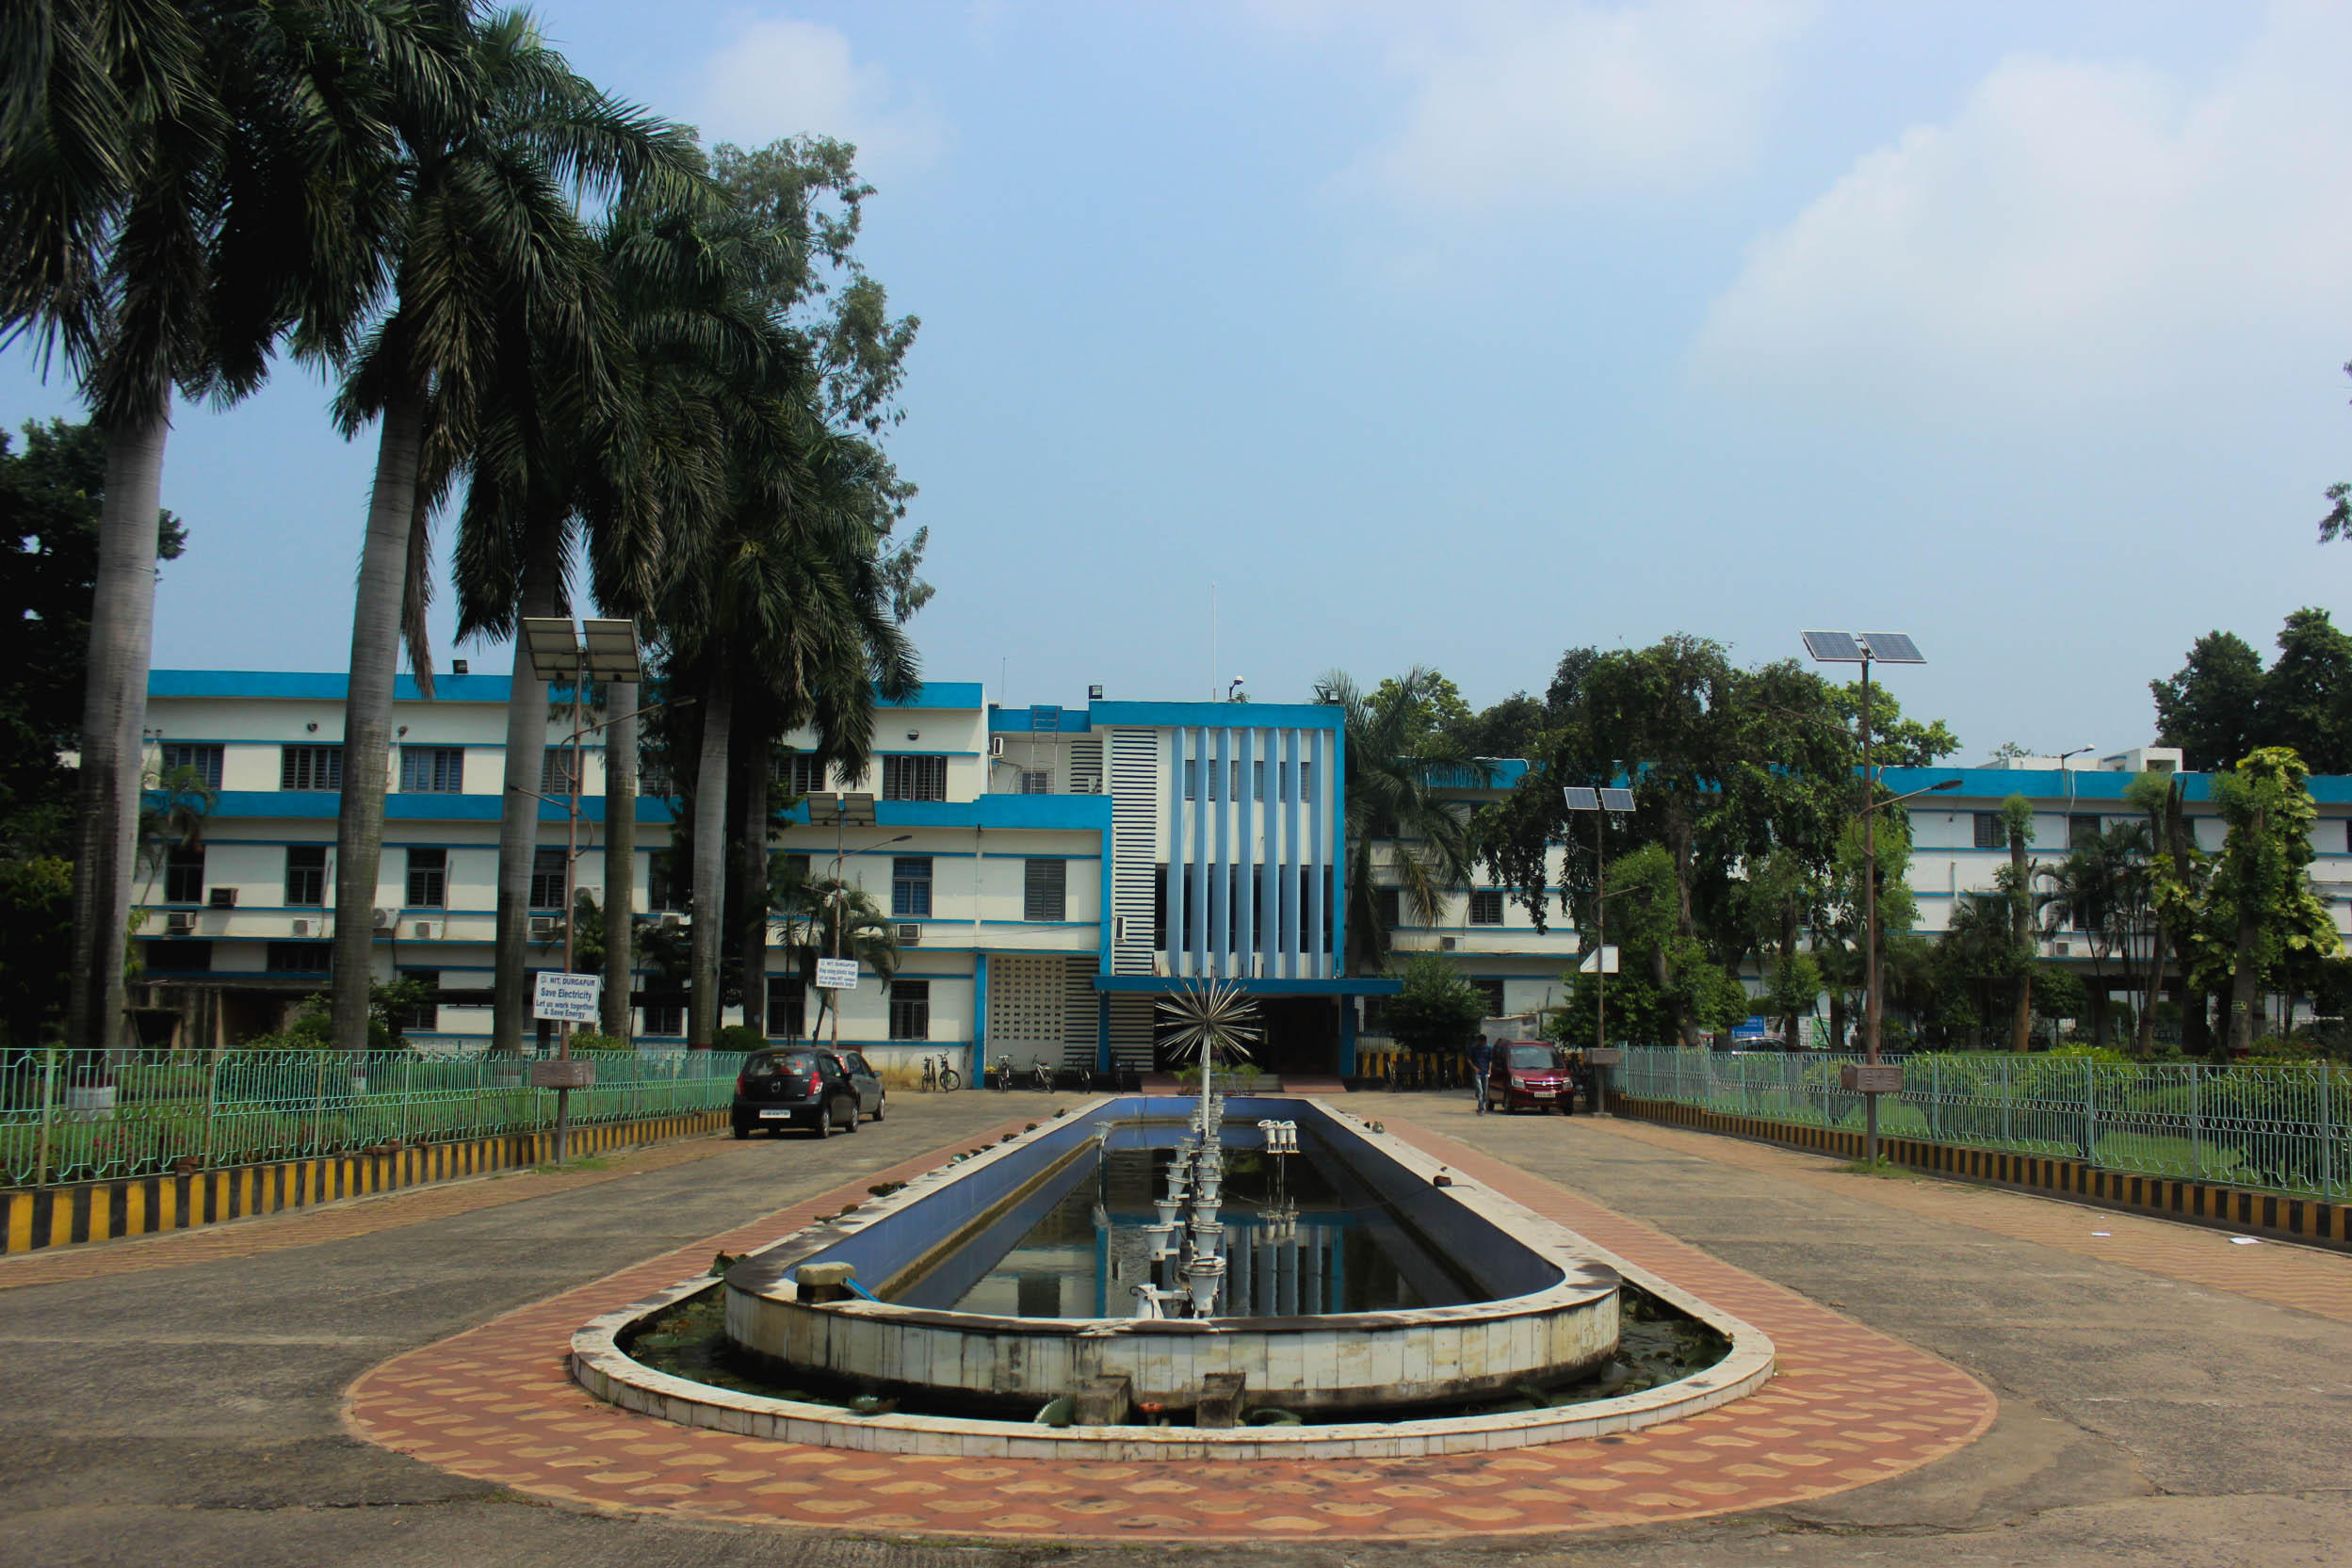 NIT (National Institute of Technology), Durgapur Image